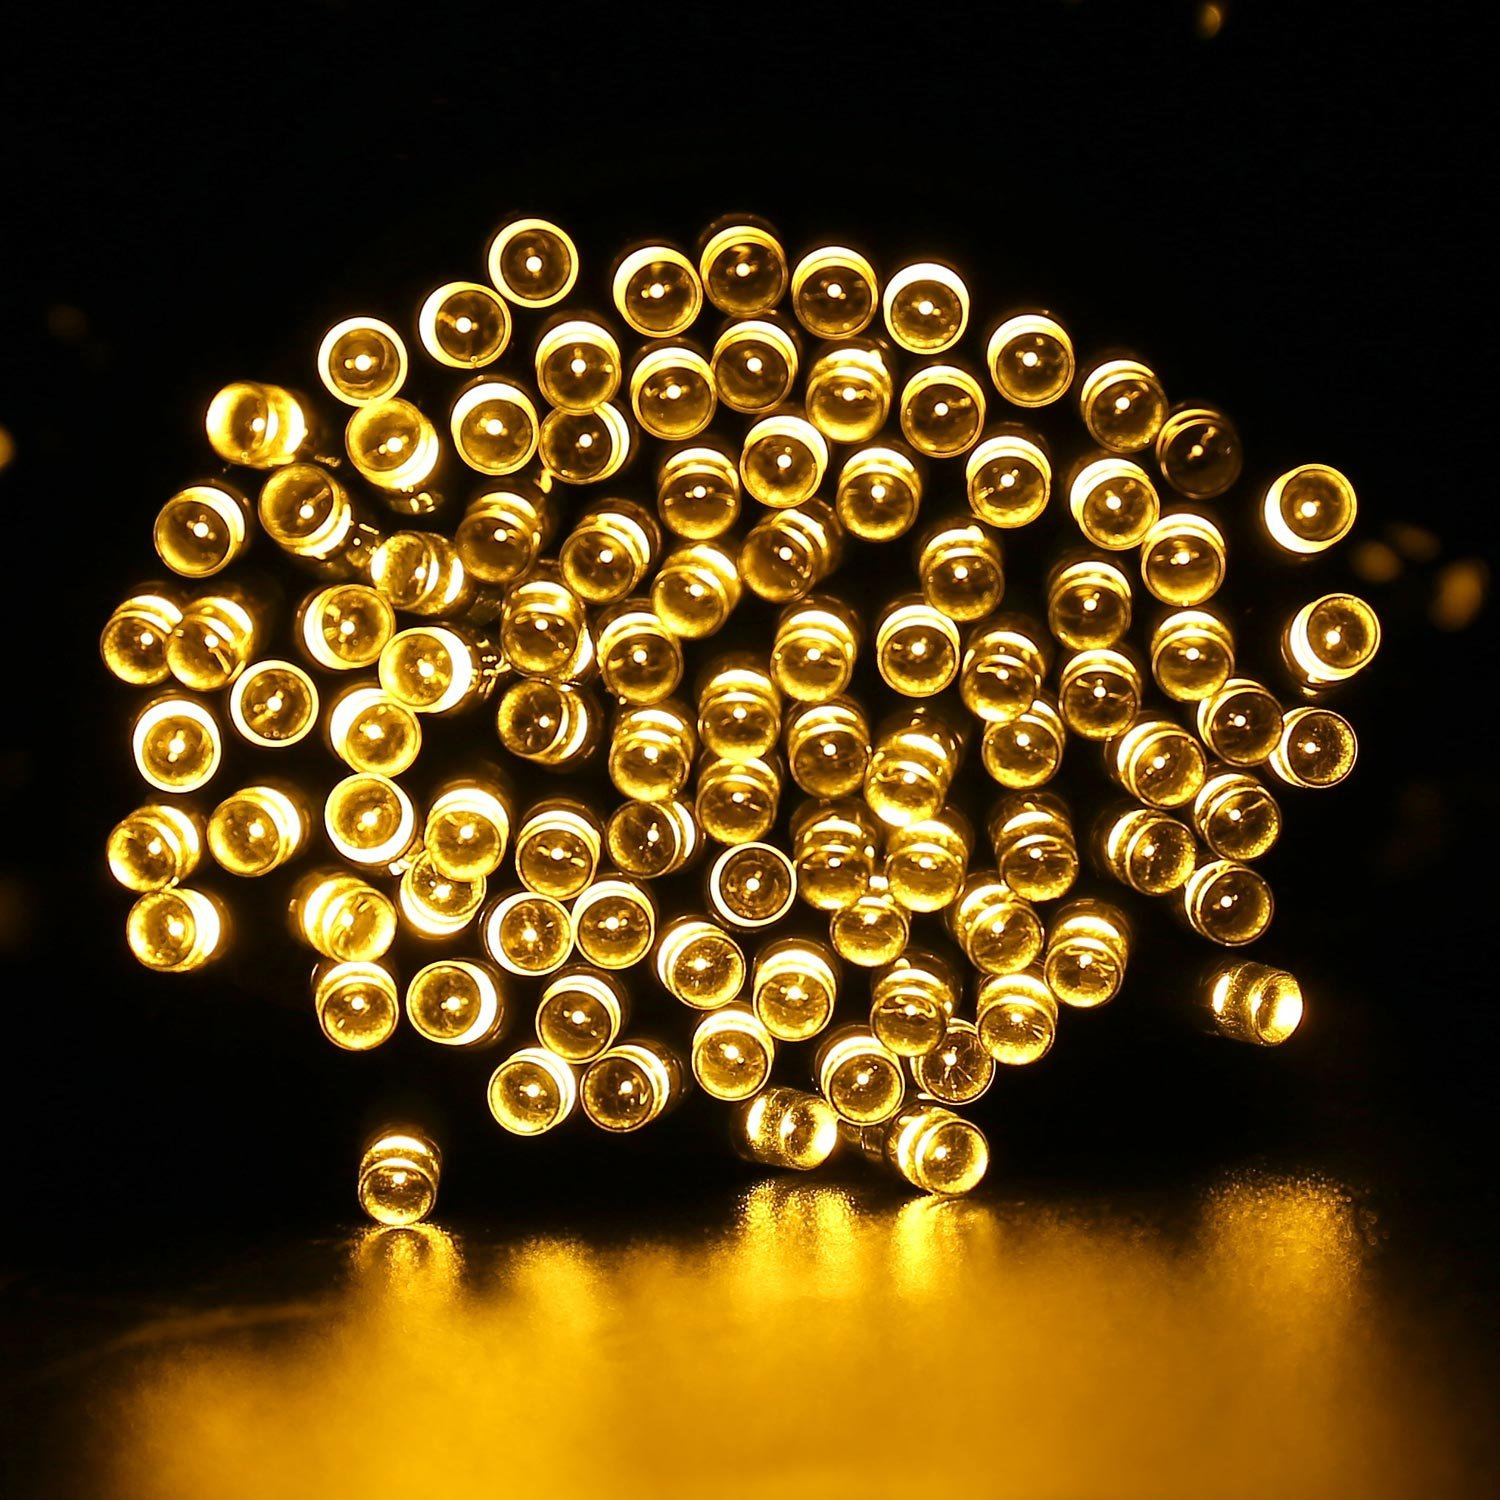 Solar powered led fairy lights for indoor or outdoor use outdoor qedertek 2 pack solar lights 72ft 200 led fairy garden string decorative lighting for home lawn aloadofball Choice Image